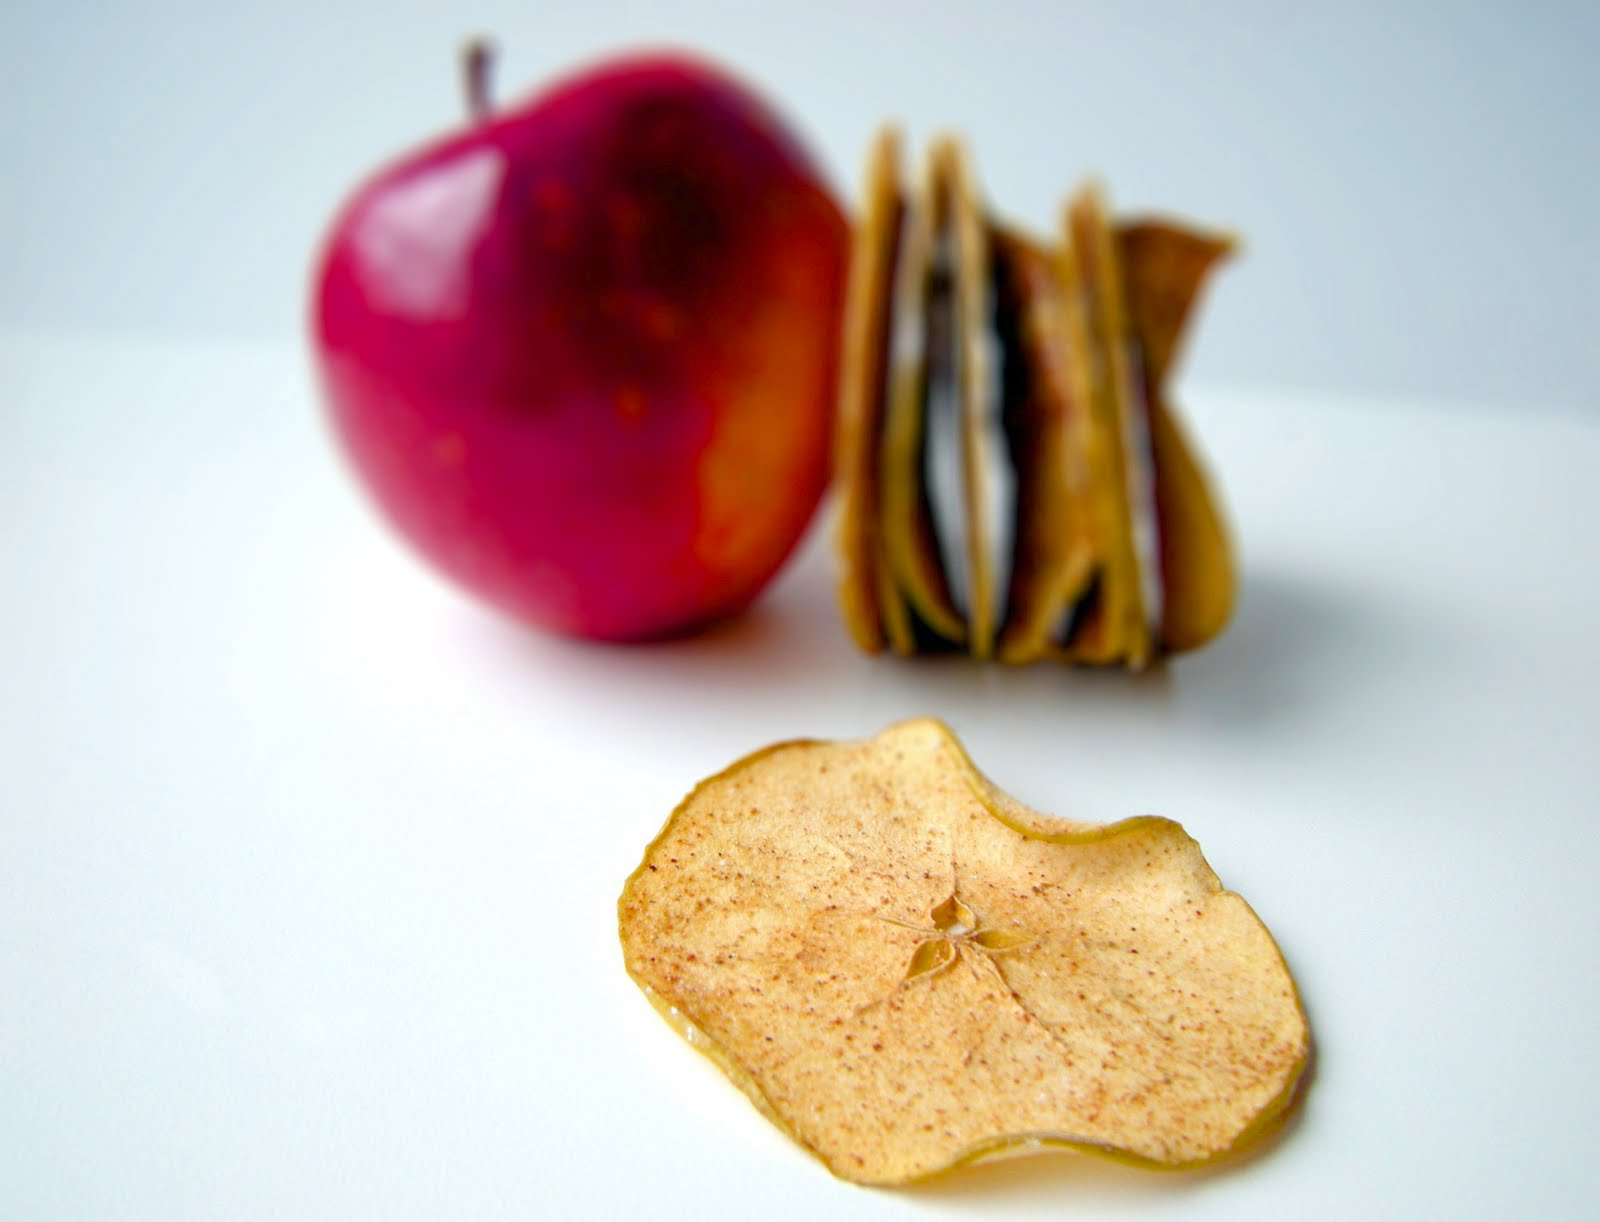 Crafty Lass: Five-Spice Apple Chips